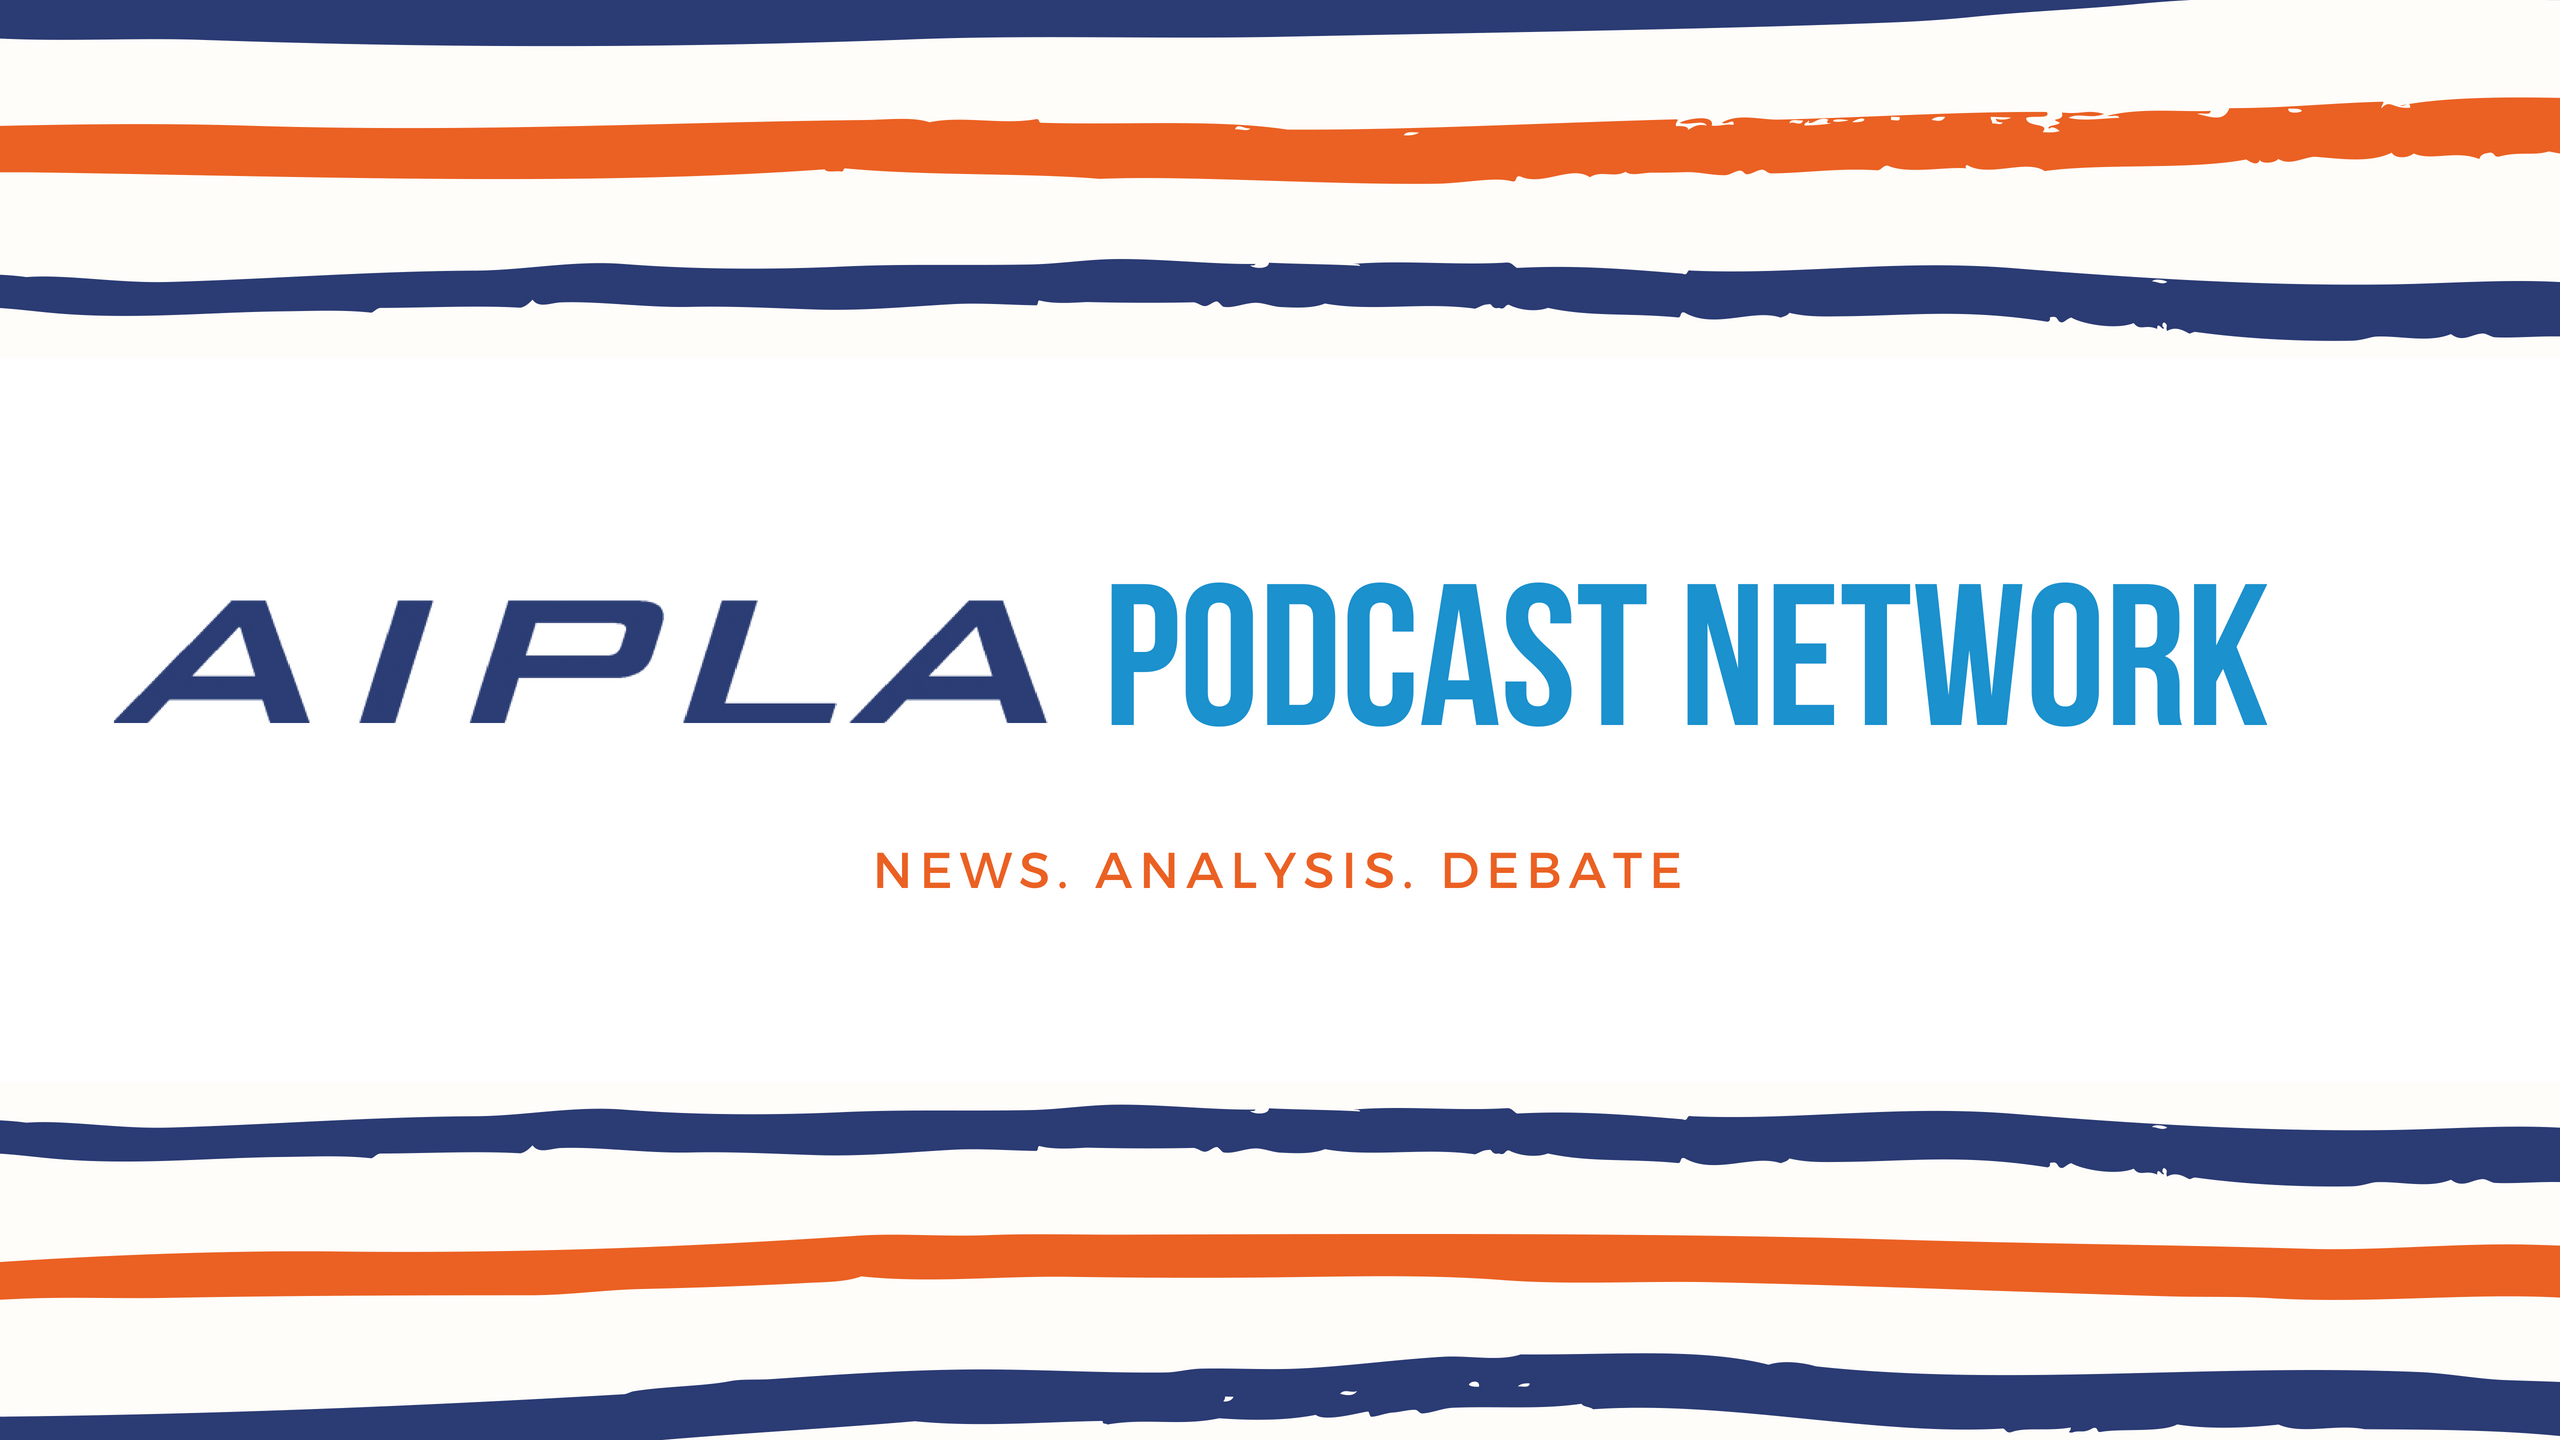 AIPLA Podcast Network